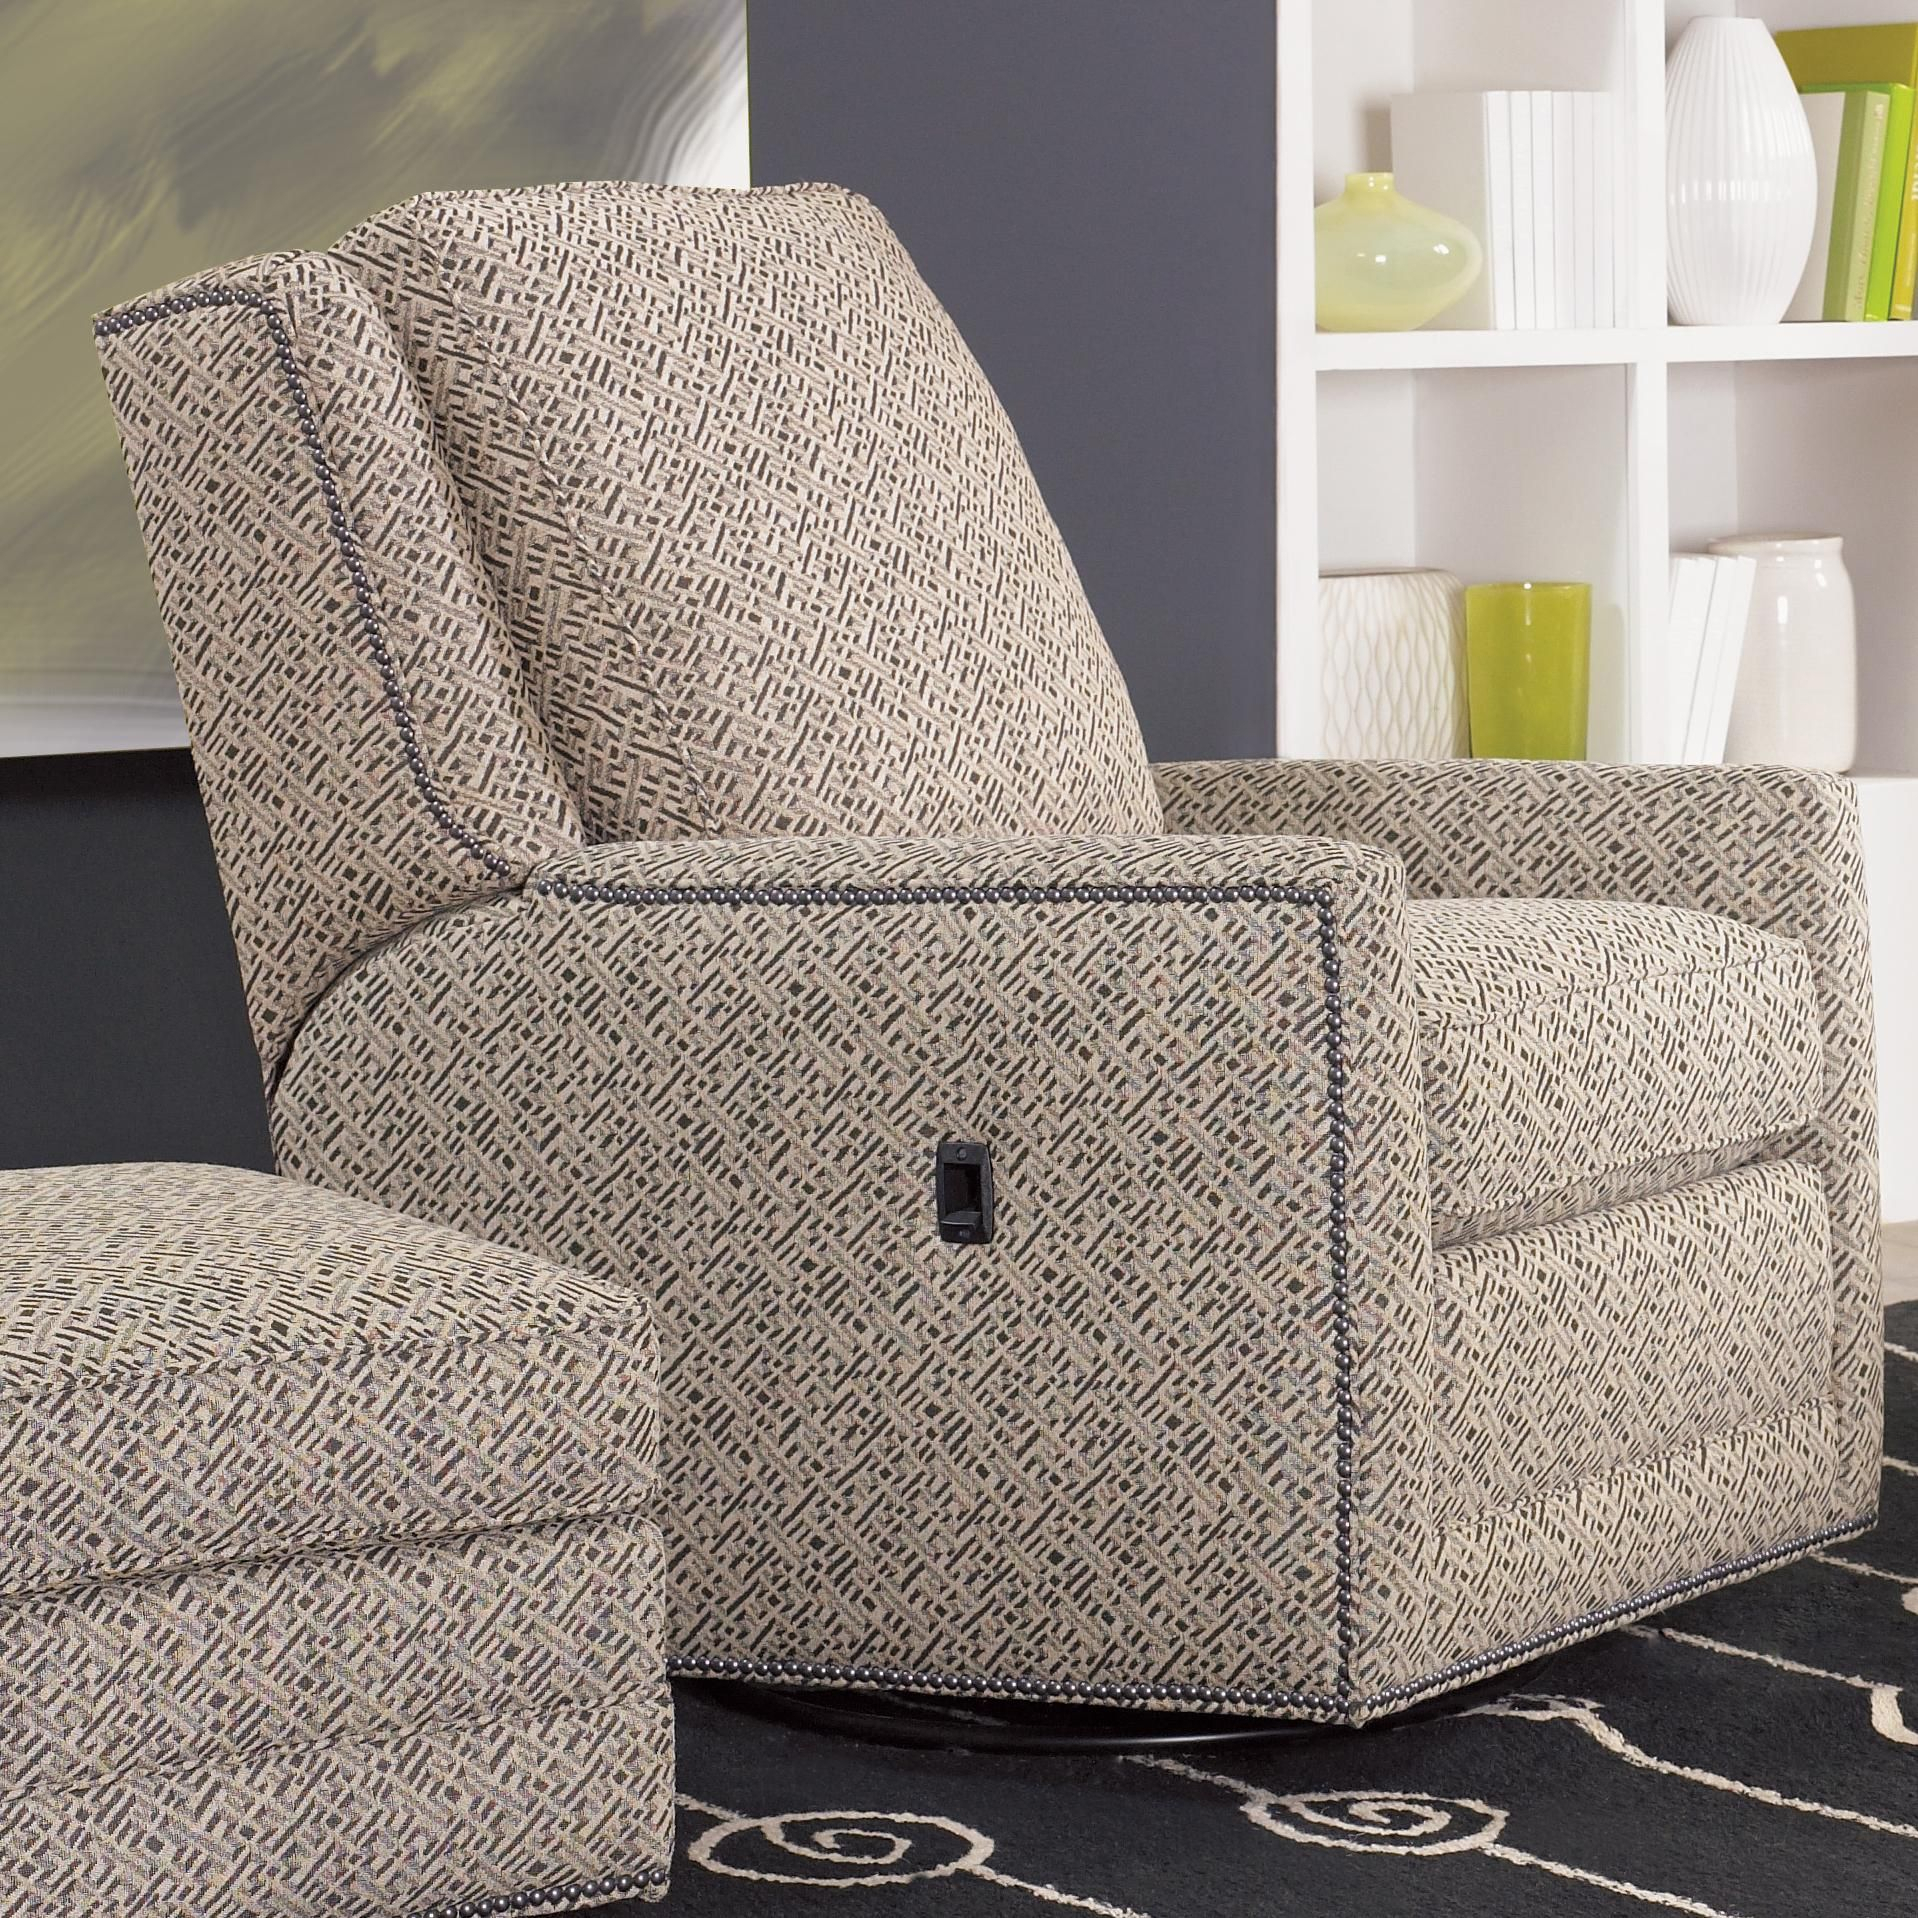 Recliners Swivel Tilt Back Chairsmith Brothers | Recliner Pertaining To Bailey Linen Flare Arm Wing Skirted Swivel Gliders (View 5 of 20)